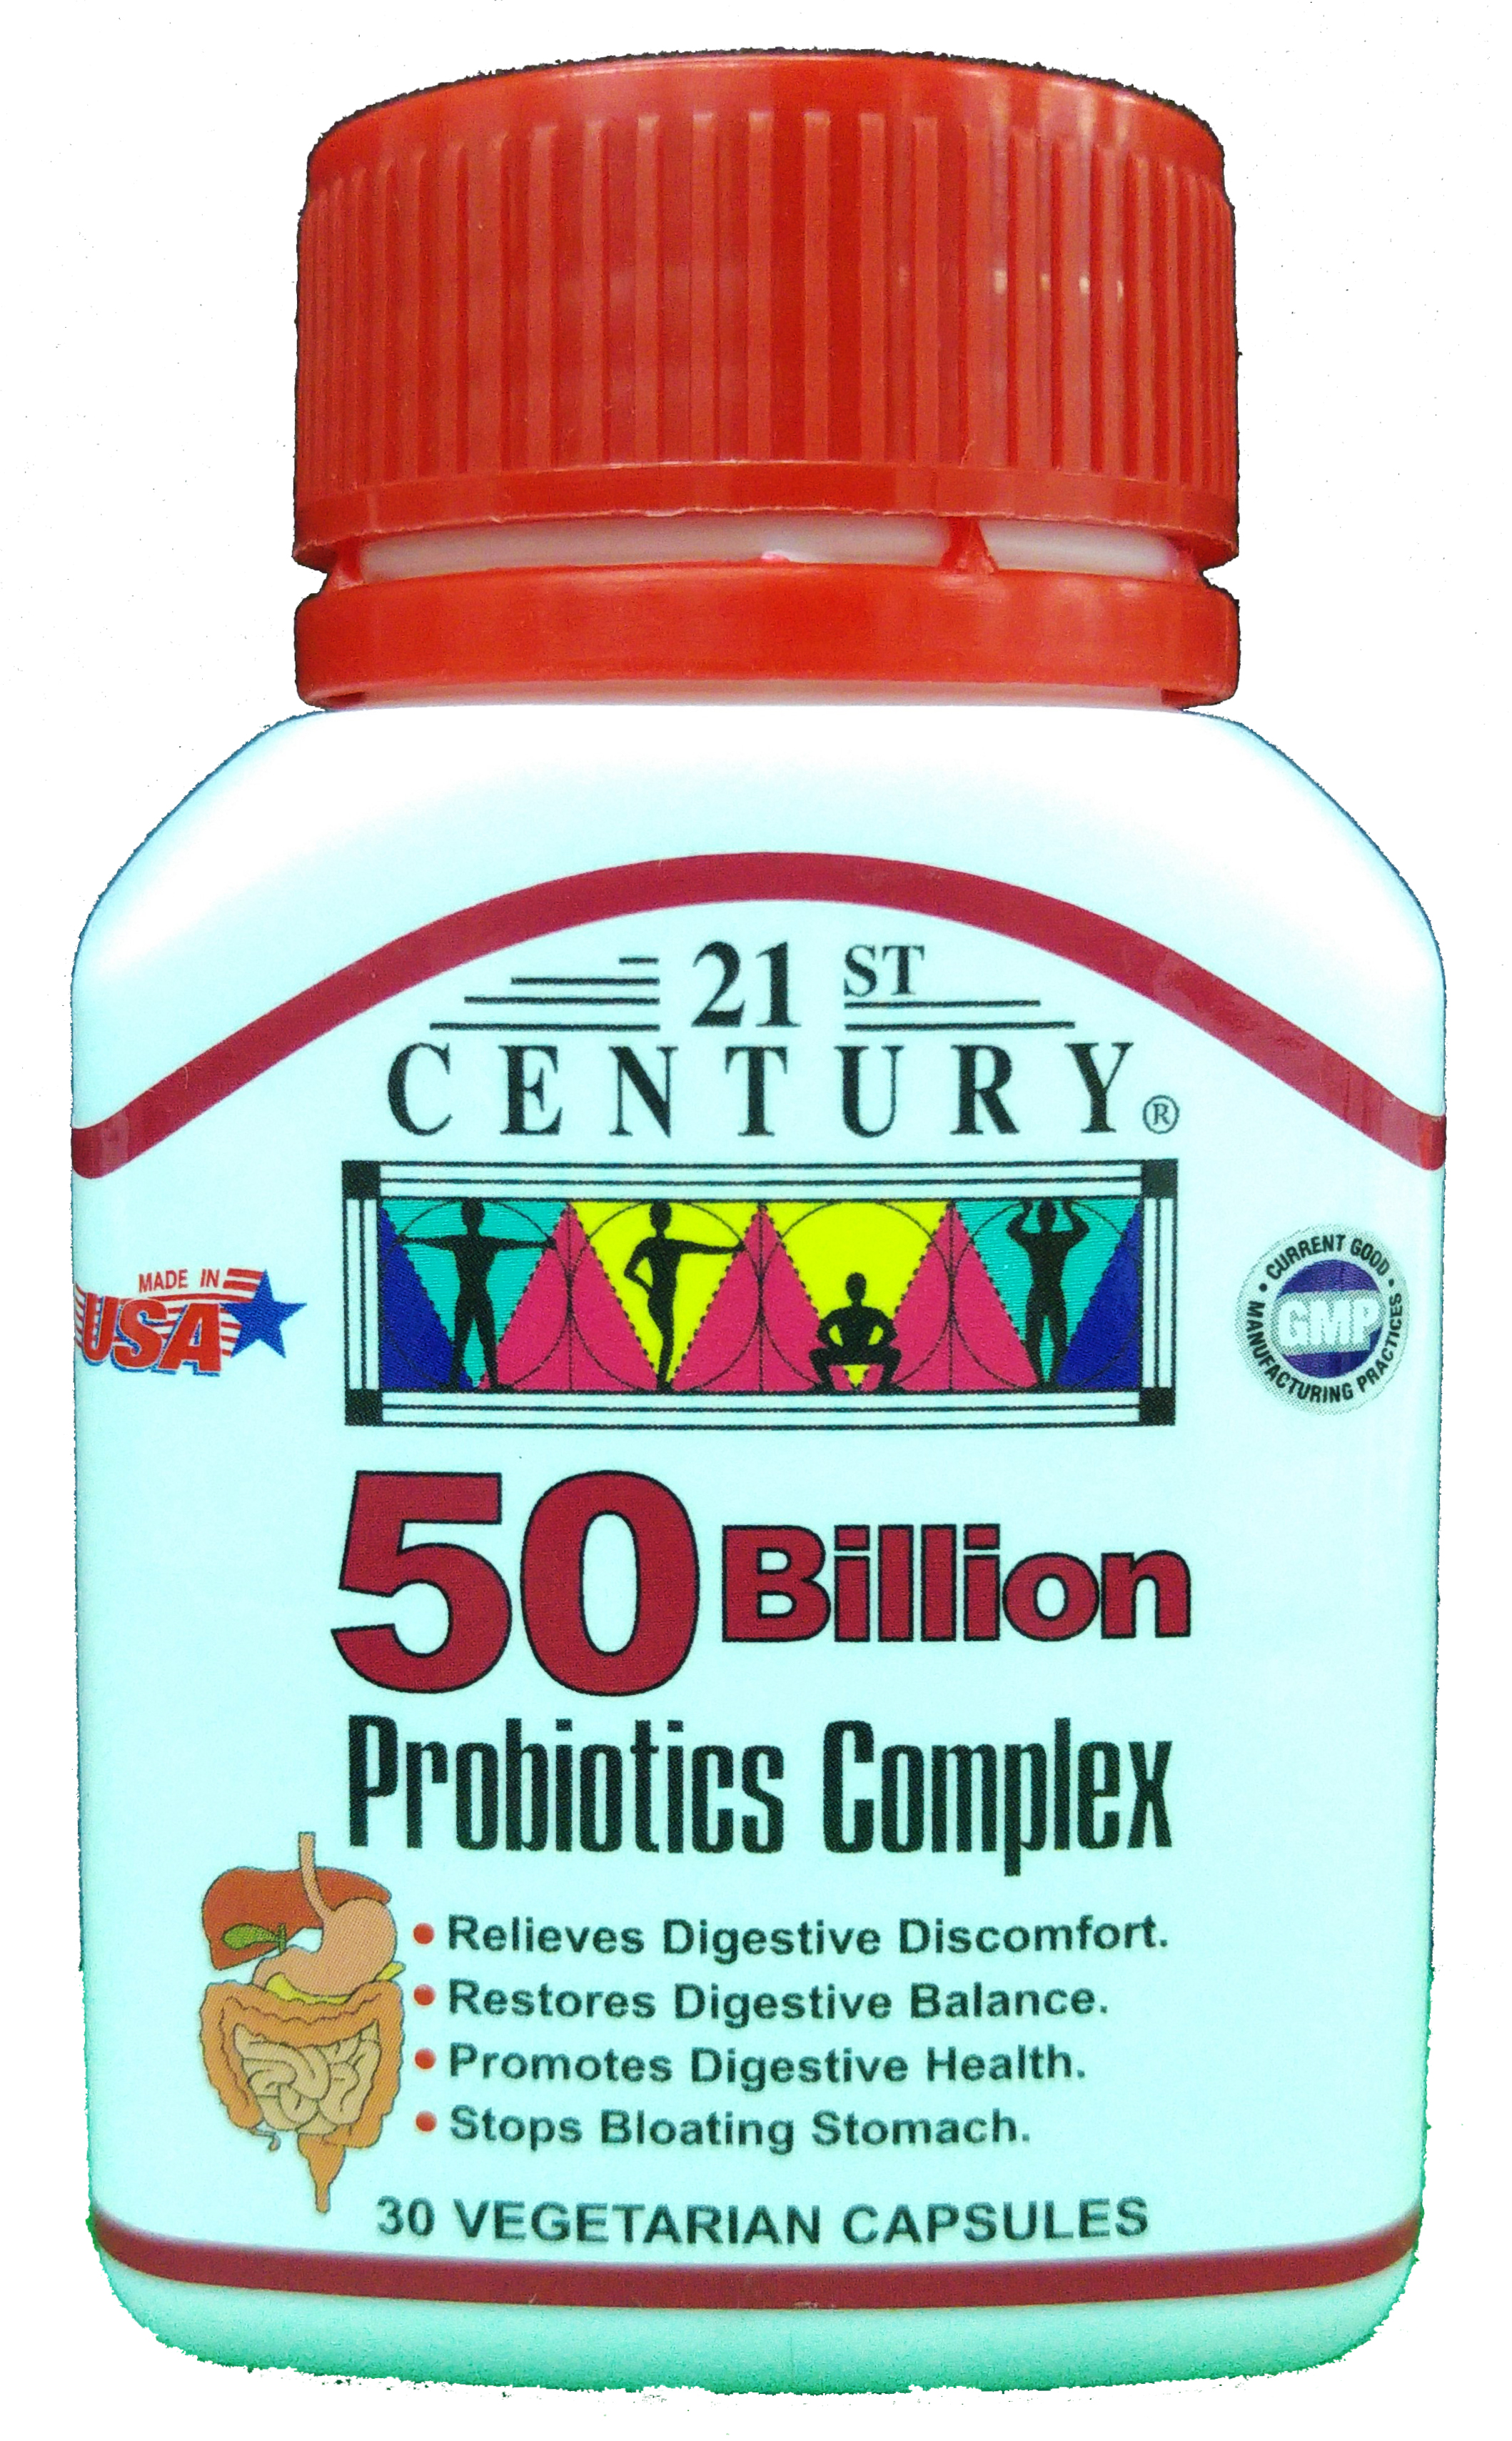 Probiotics Complex, 50 Billion CFUs per capsule